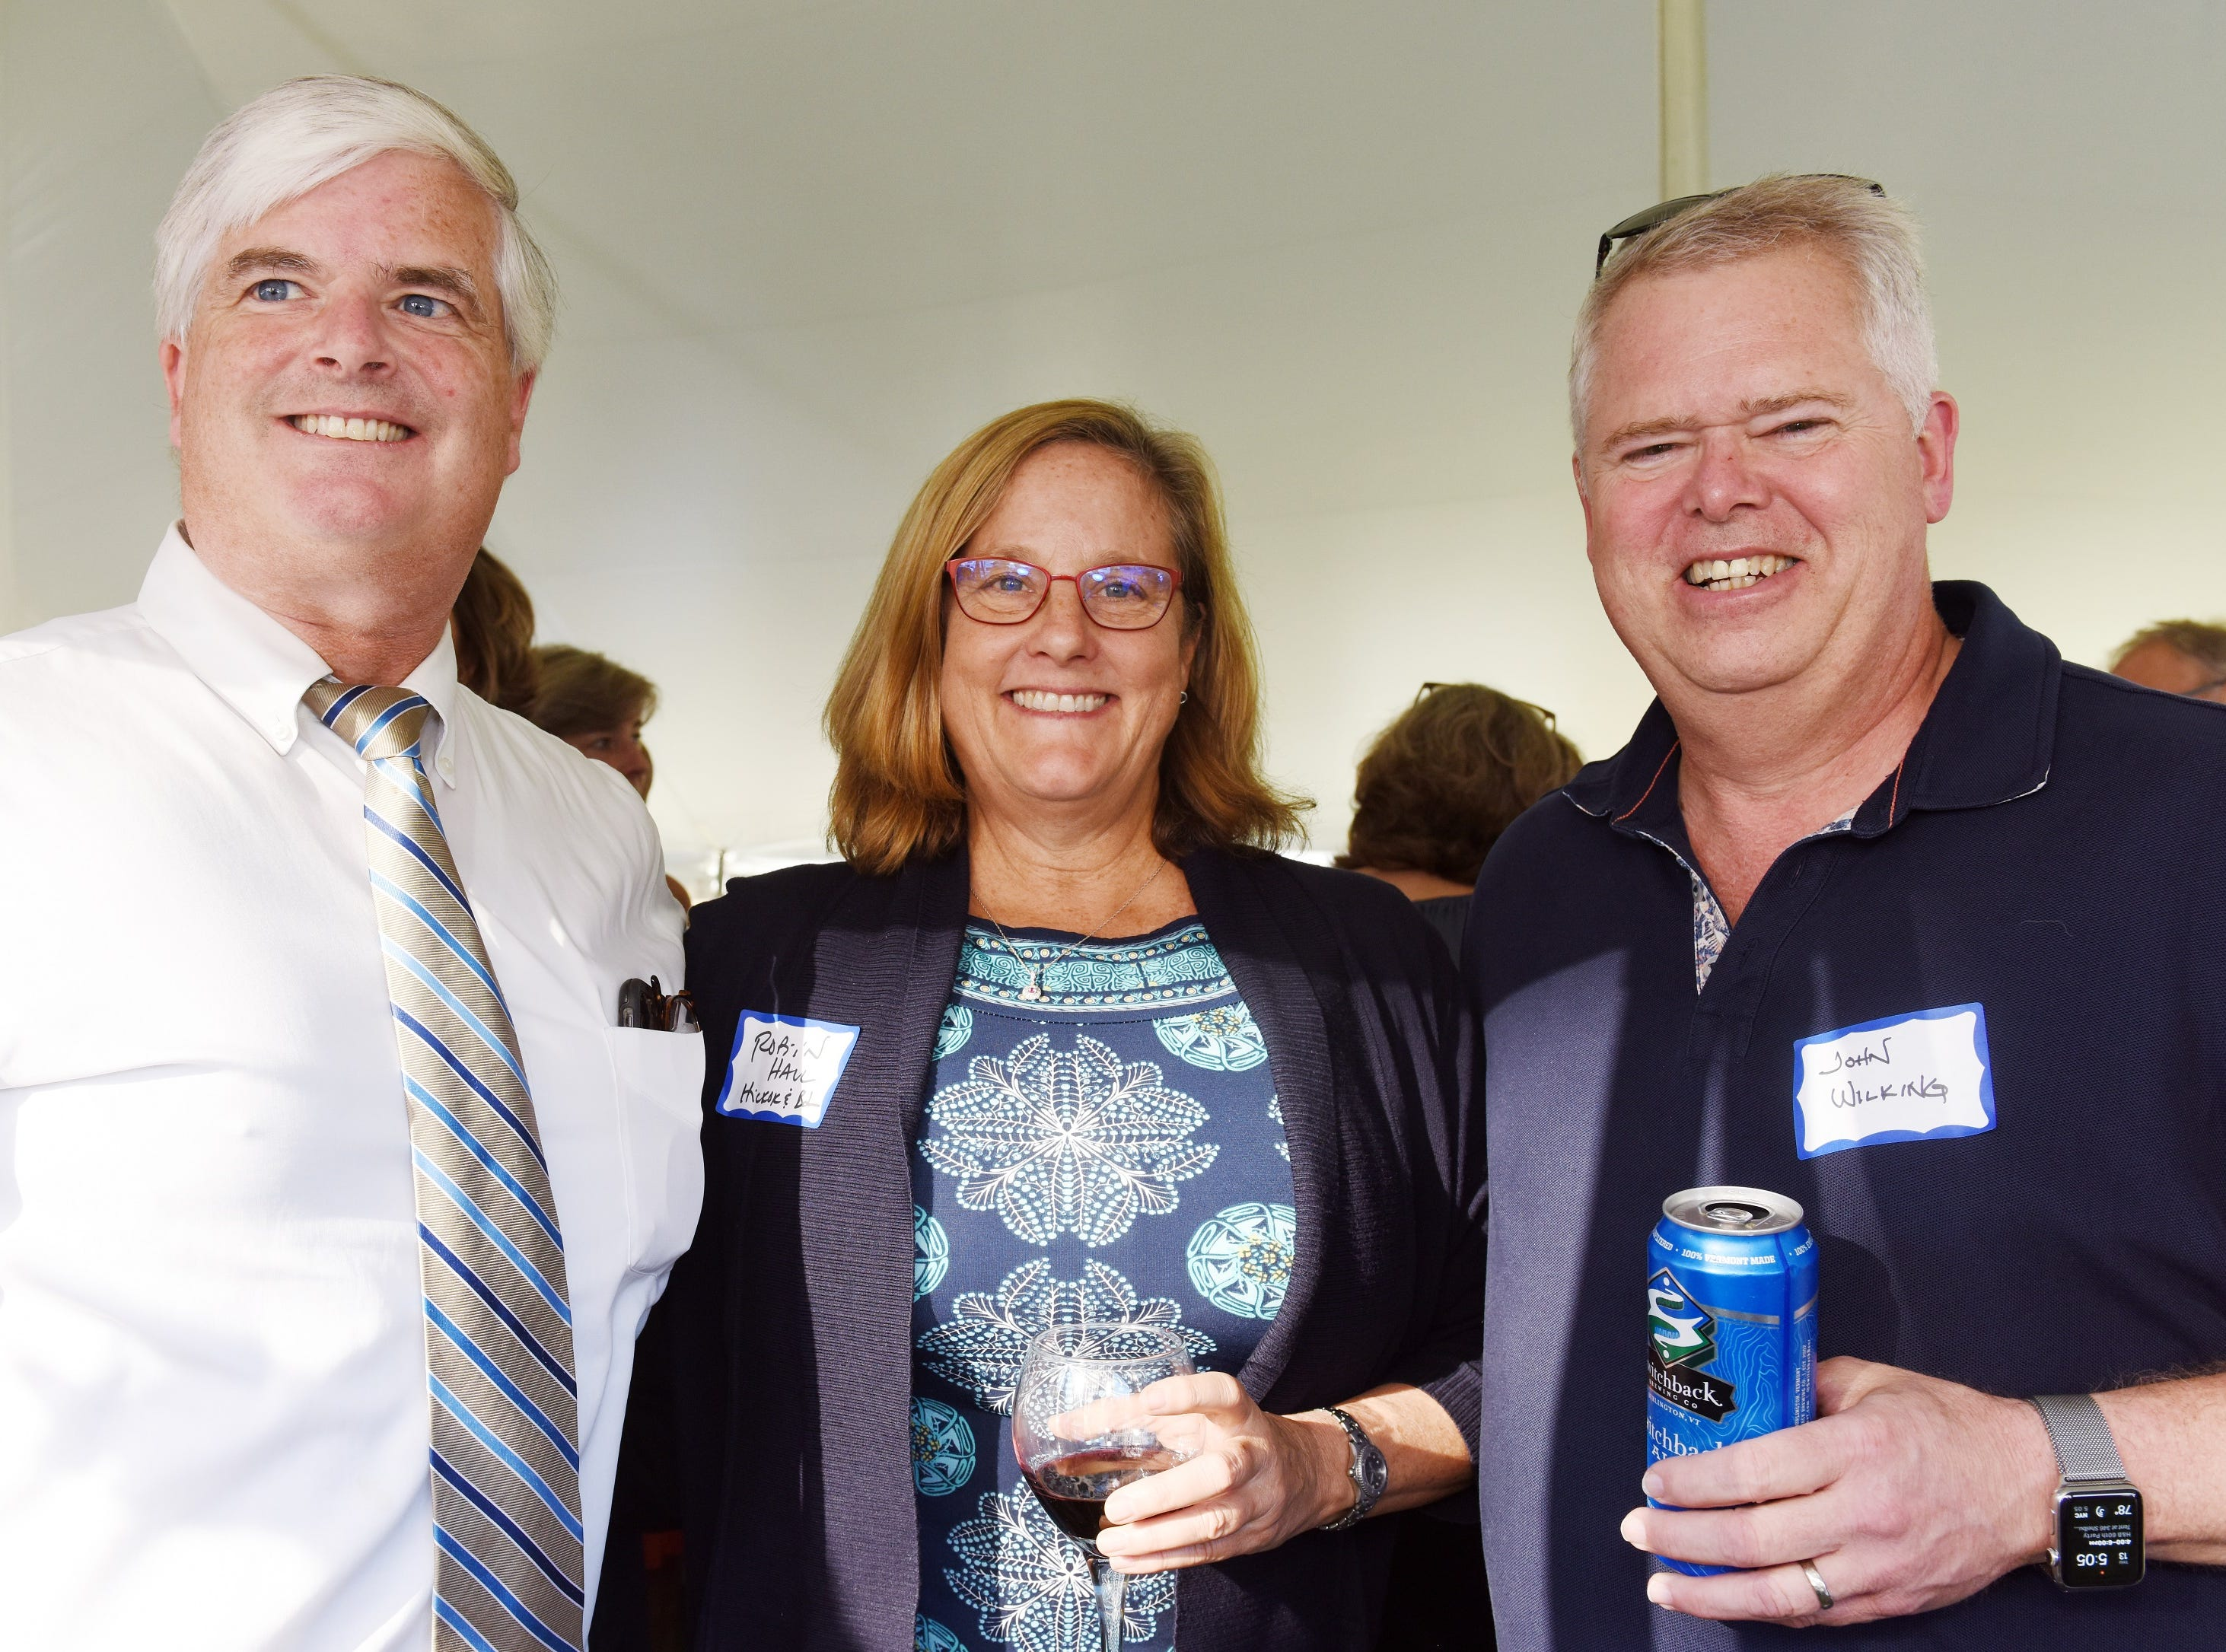 Dan O'Rourke, Robin Hall, and John Wilkings attend the Coldwell Banker Hickok & Boardman 60th Anniversary on September 13, 2018, with current and past agents and community leaders in Burlington, VT.